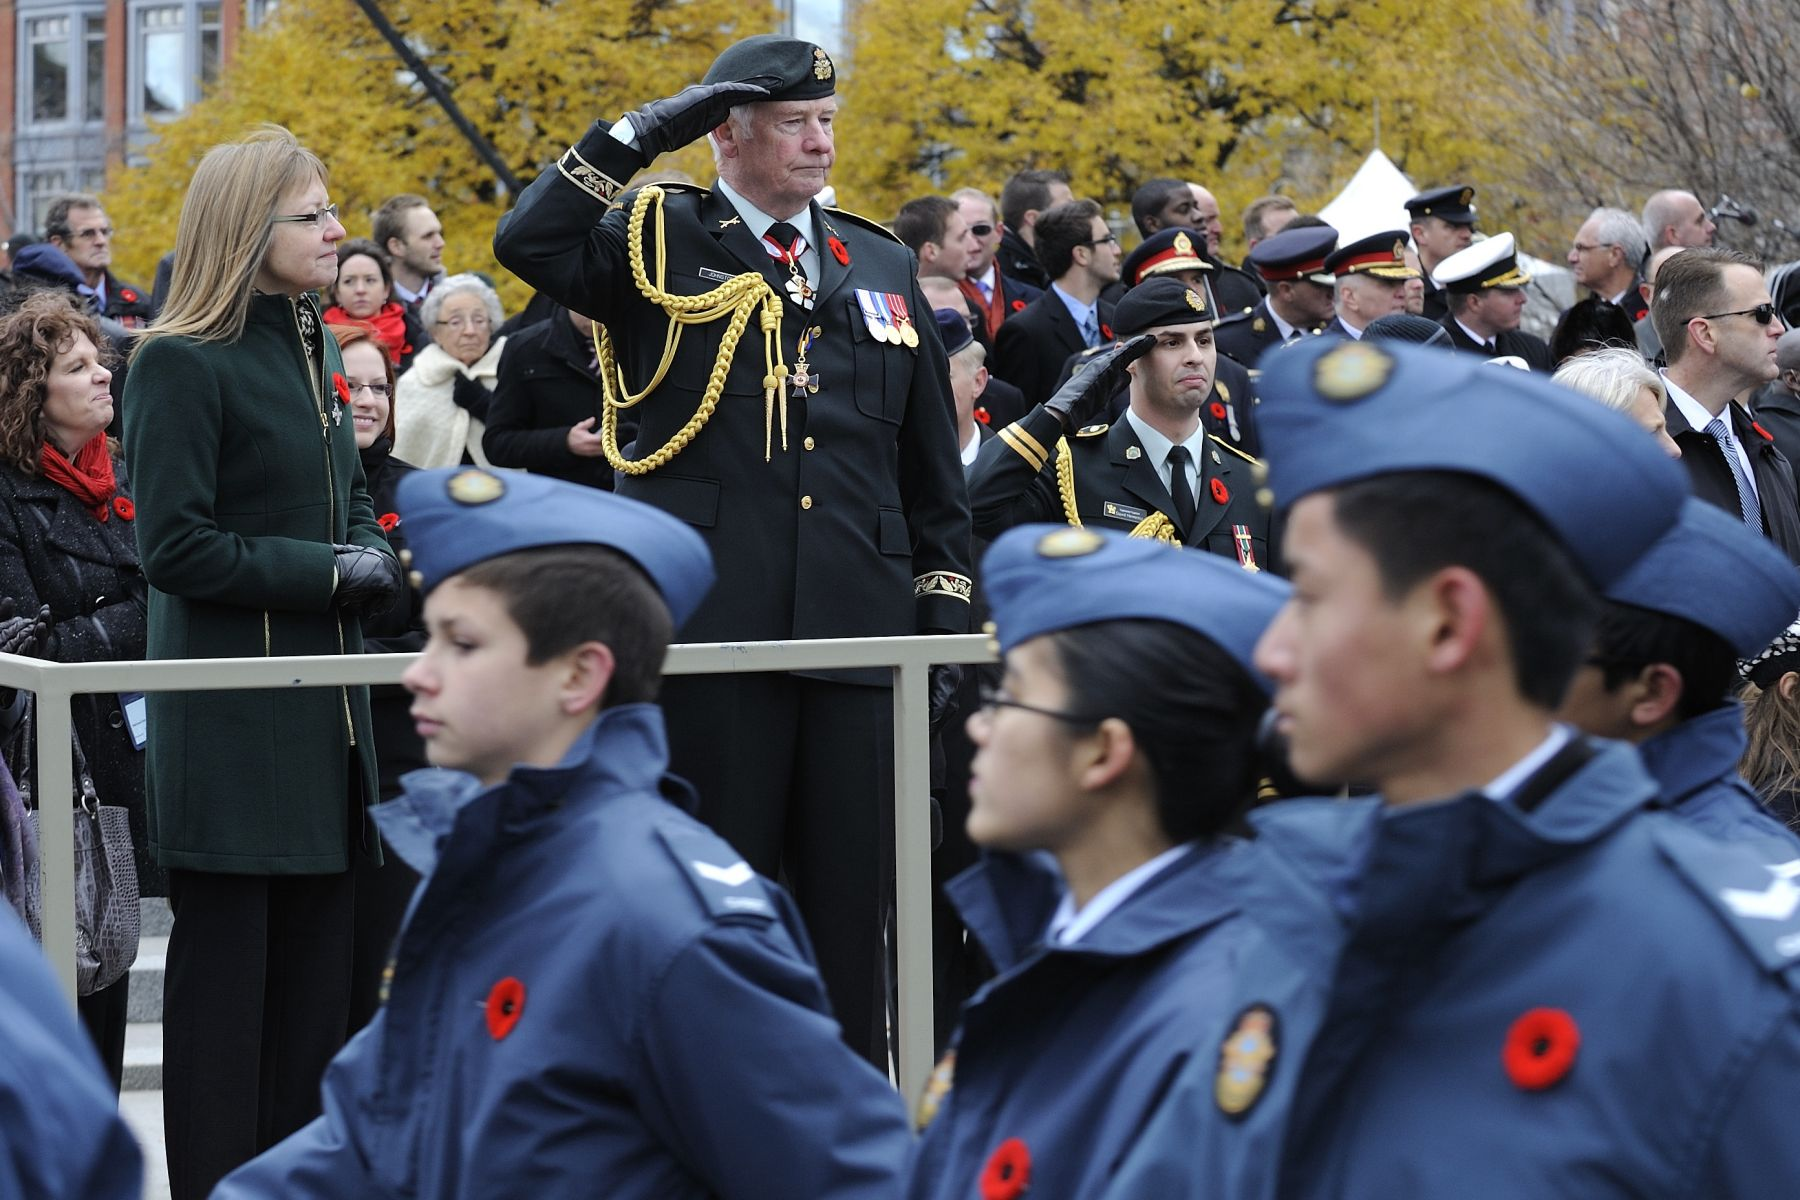 The Governor General and Commander-in-Chief of Canada saluted the members of the Canadian Forces as they marched past during the parade.